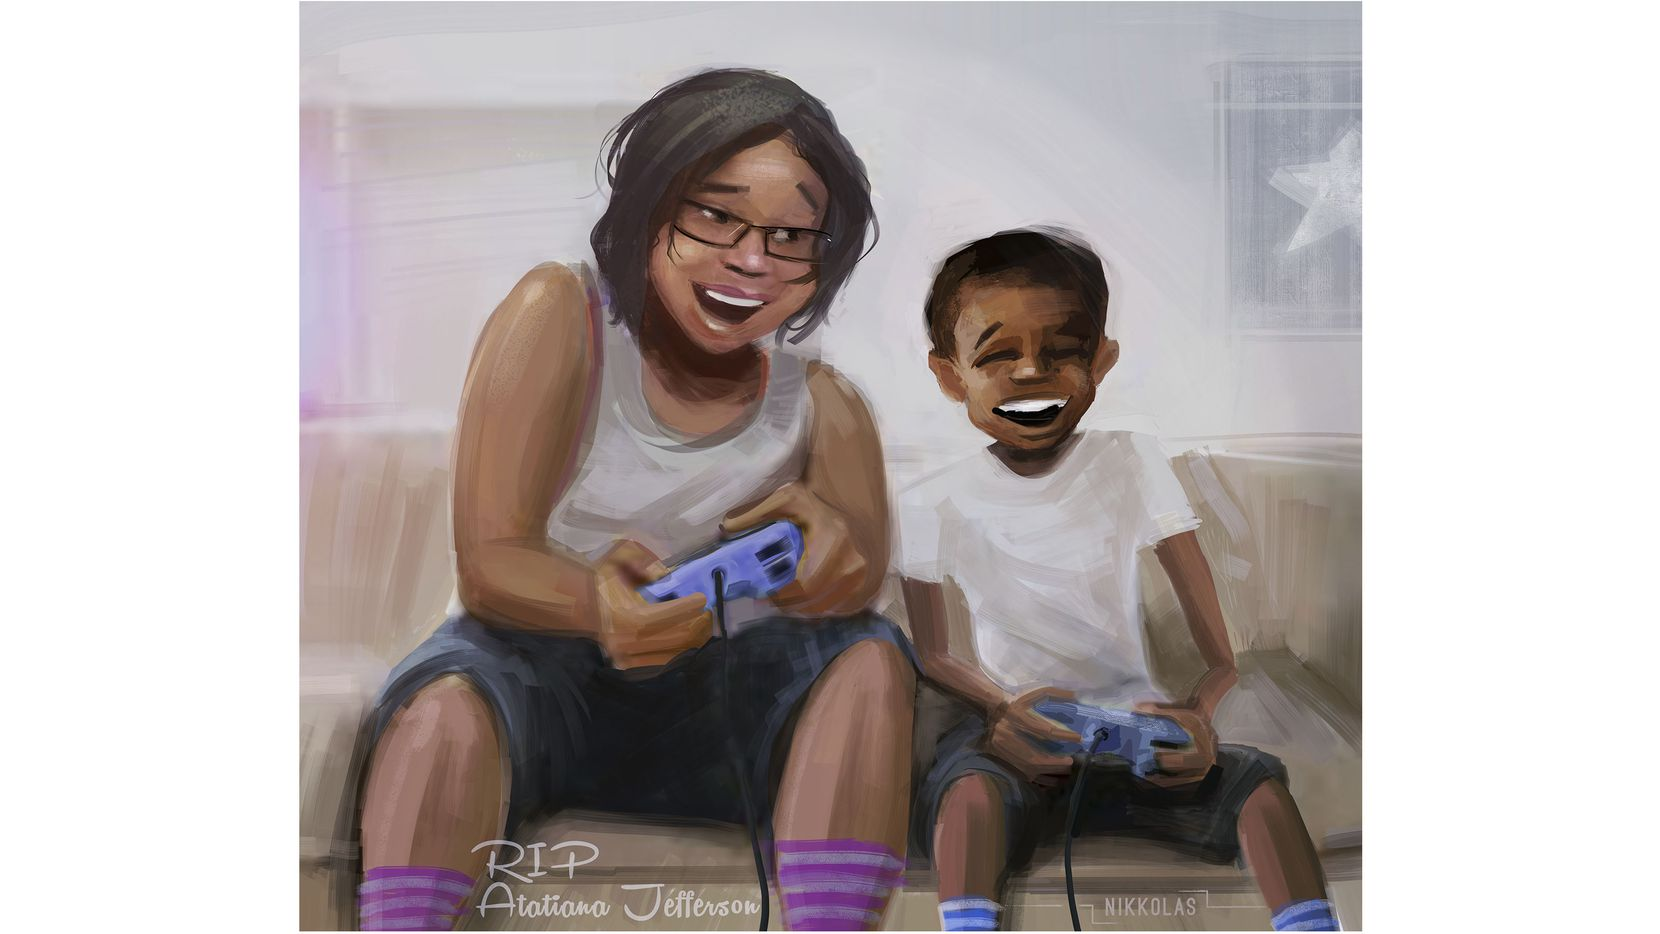 Nikkolas Smith painted this portrait of Atatiana Jefferson and her young nephew, depicting what she was doing before she was fatally shot by a Fort Worth police officer early the morning of Oct. 12.